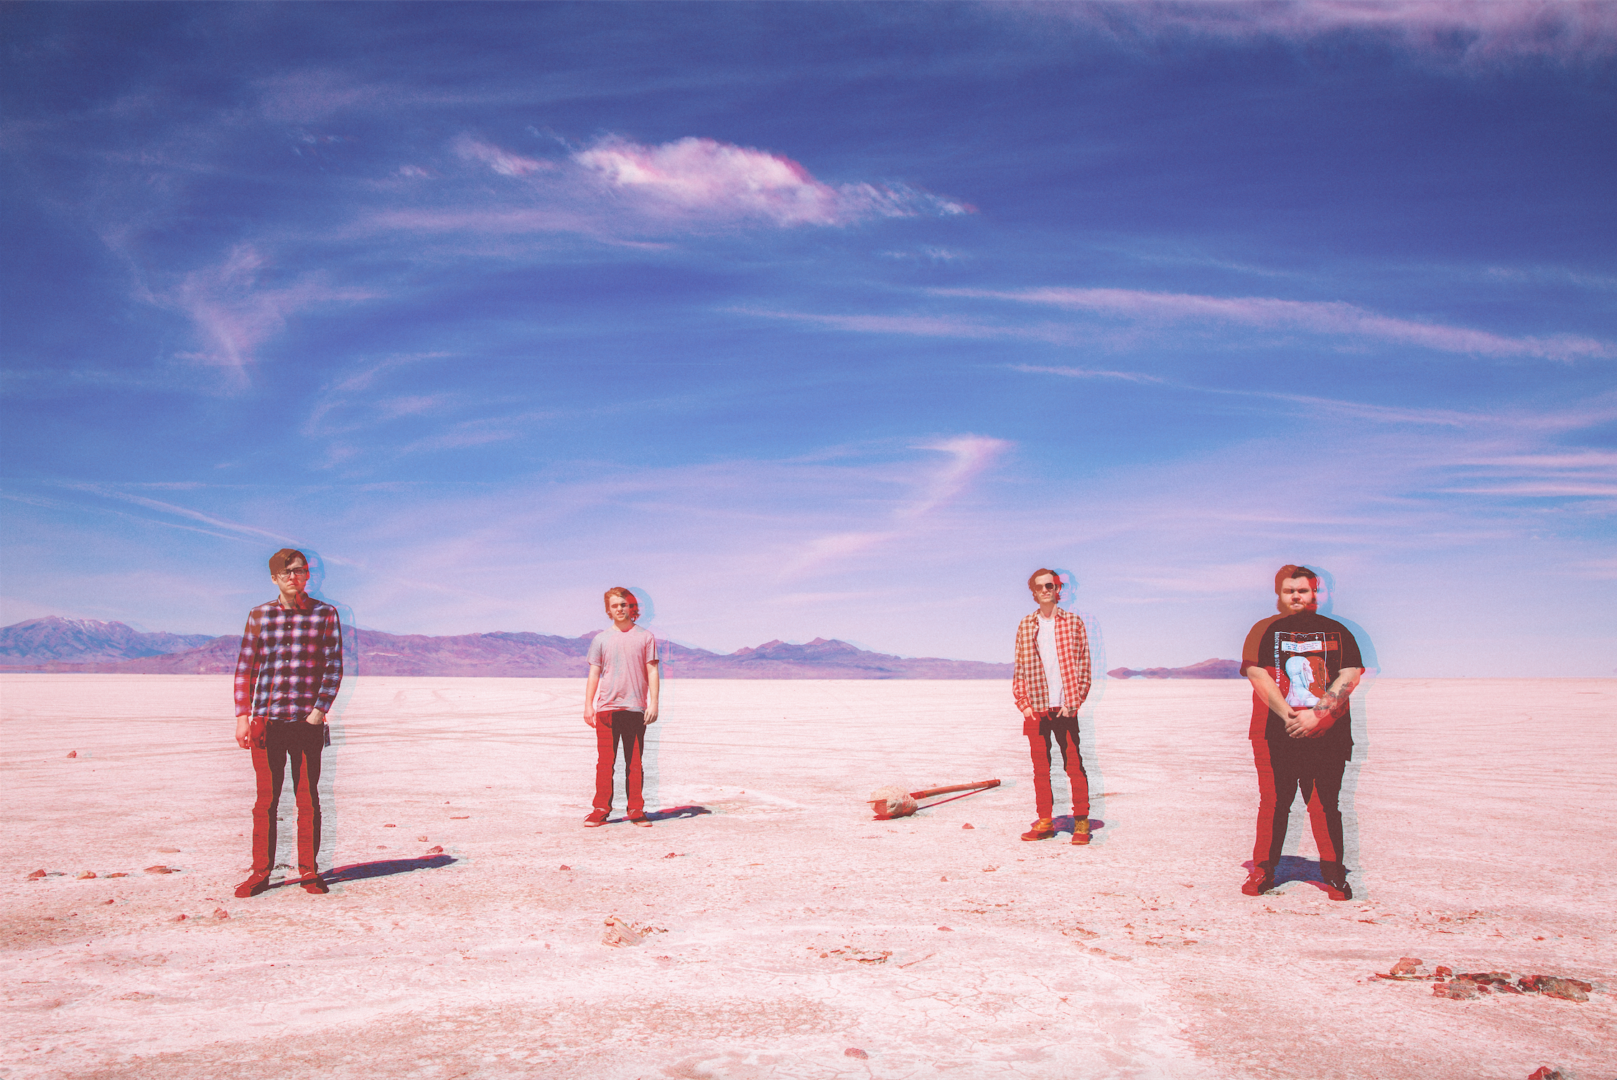 Head North Announces Summer U.S. Tour with Light Years & No Good News